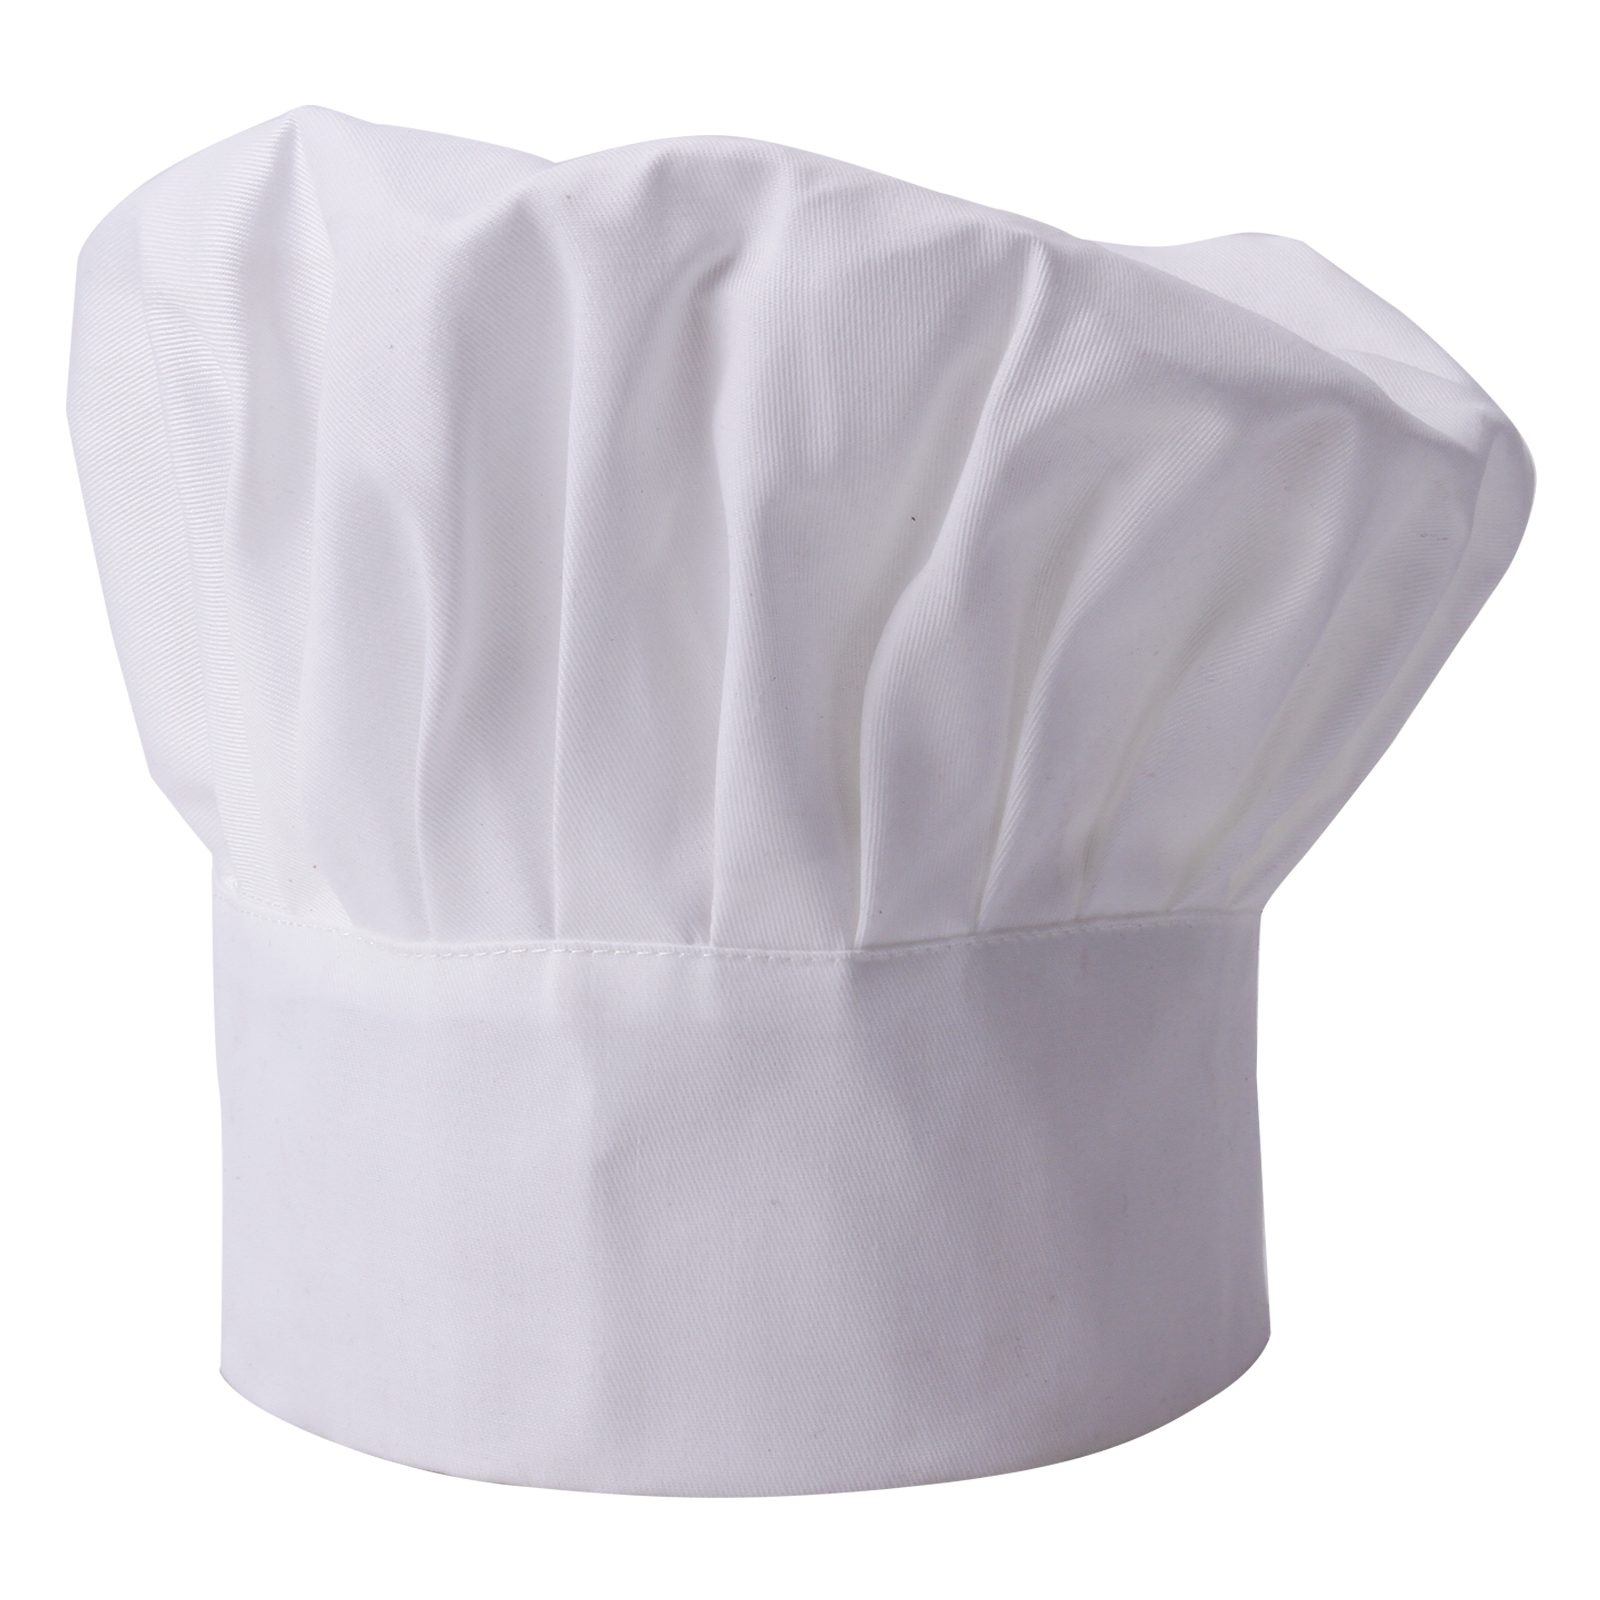 Fancy Toilet Chef Jacket Coat Chefs Hat Cap Chefwear Kitchen Catering